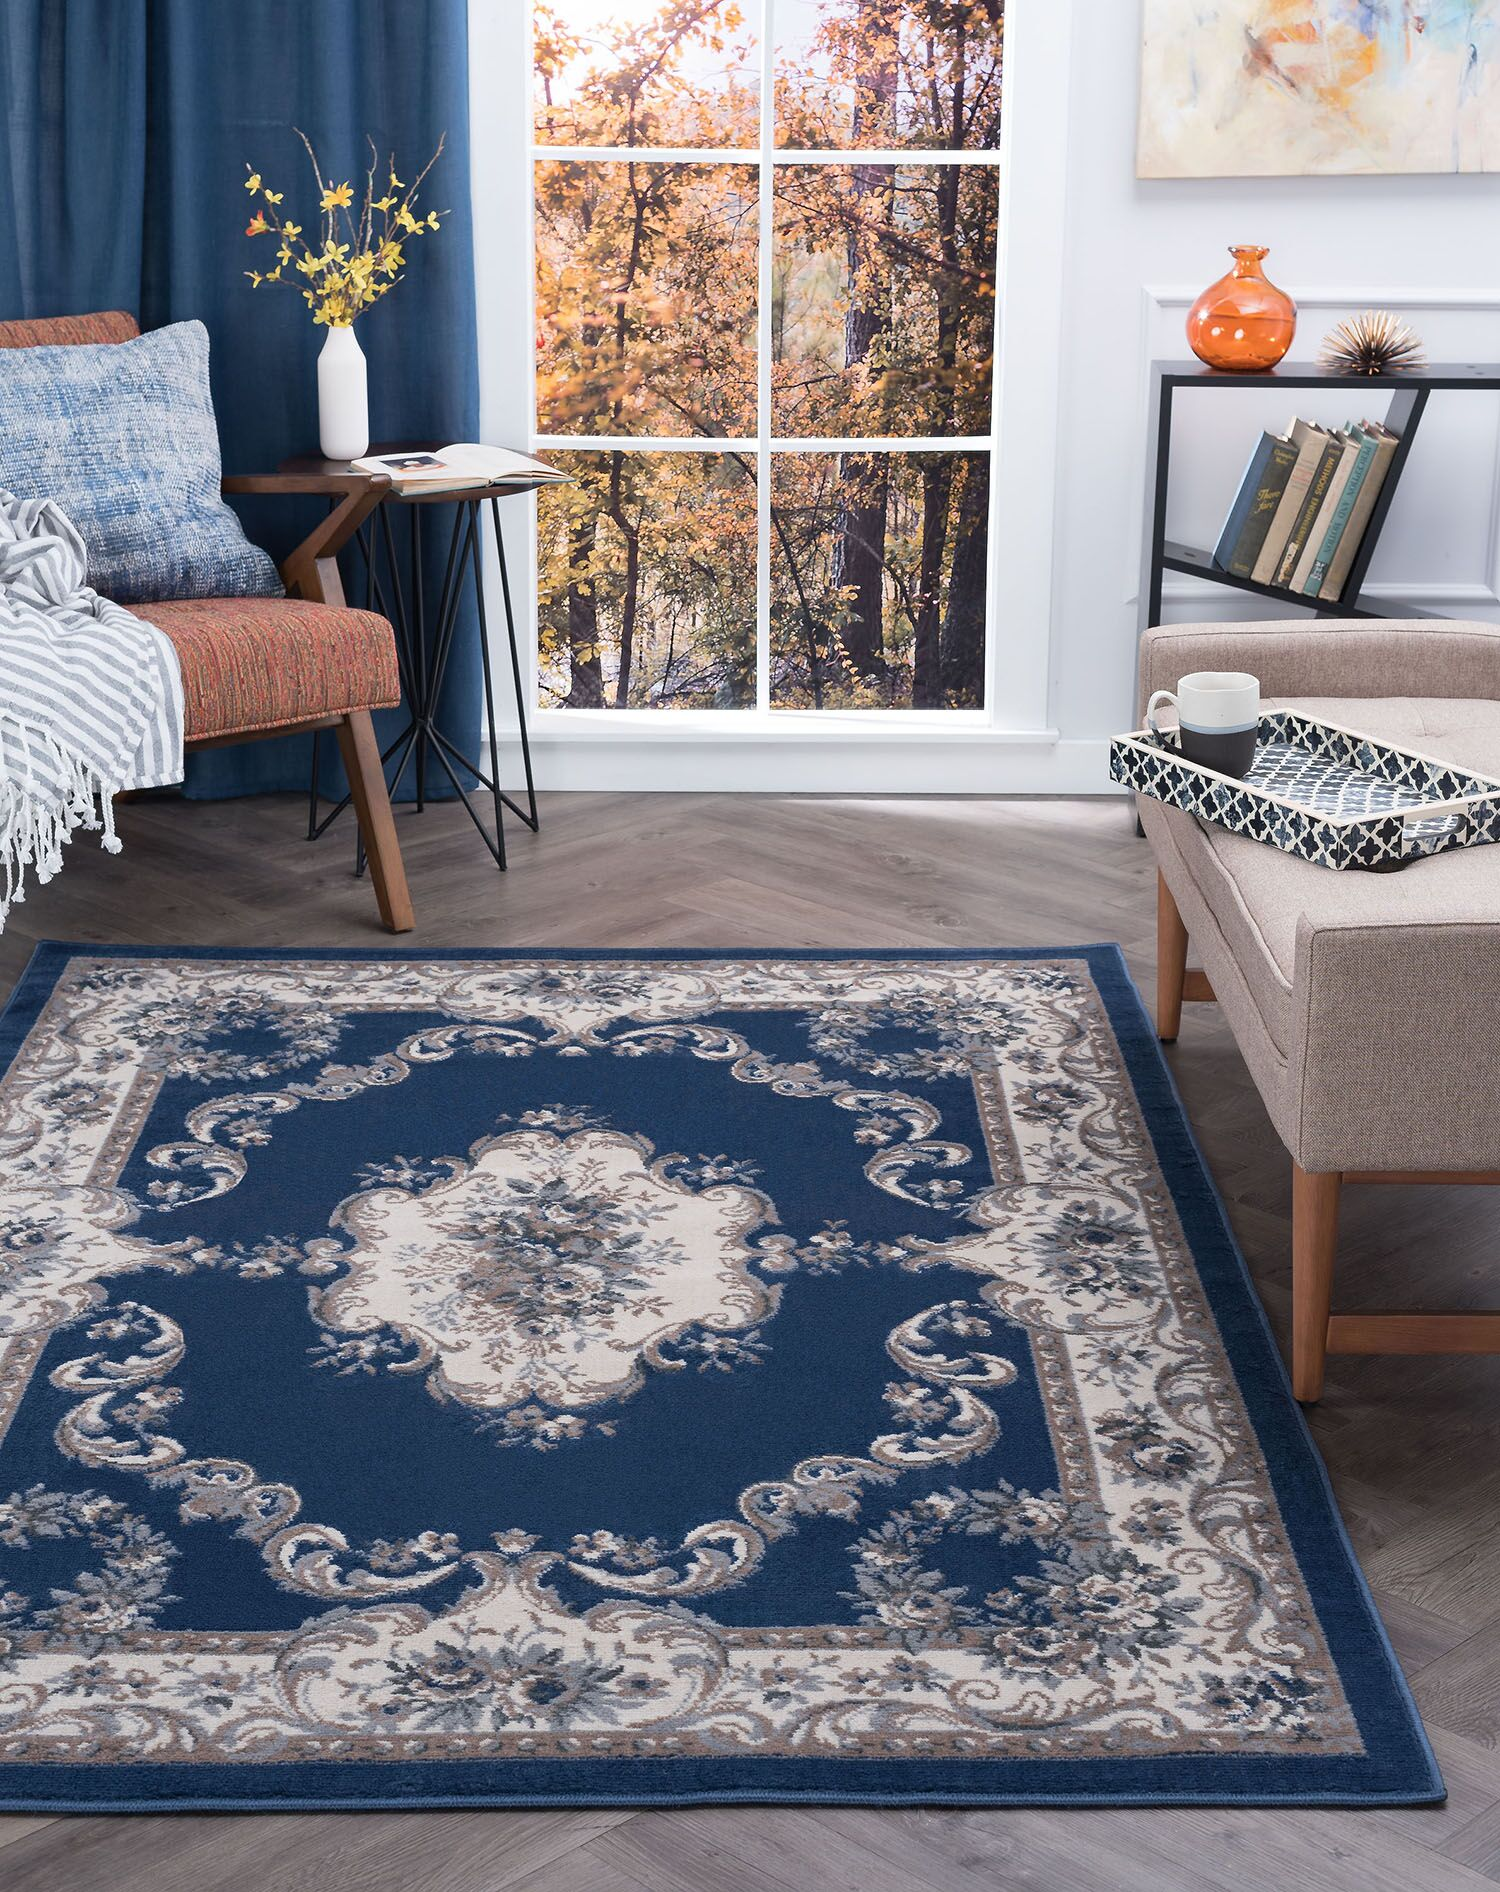 Riter Navy Area Rug Rug Size: 7'11'' x 9'10''